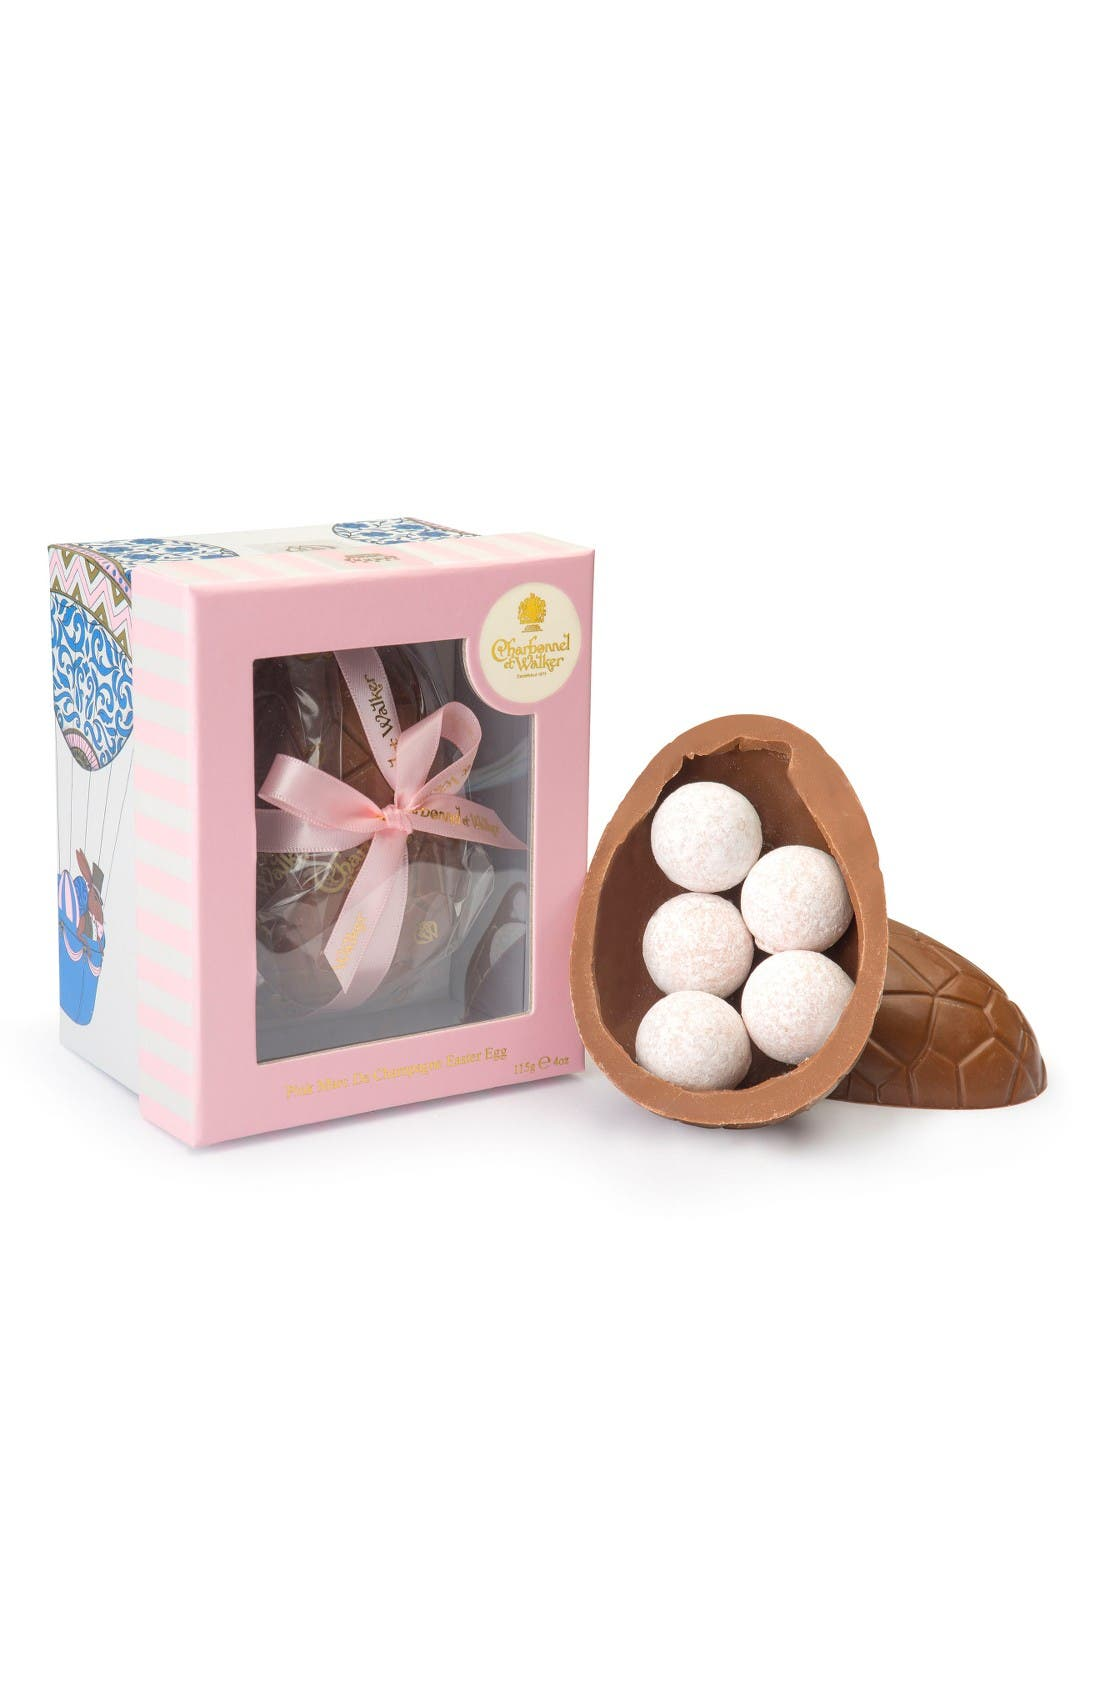 Marc de Champagne Truffles & Chocolate Egg in Gift Box,                         Main,                         color, Milk/ Pink Champagne